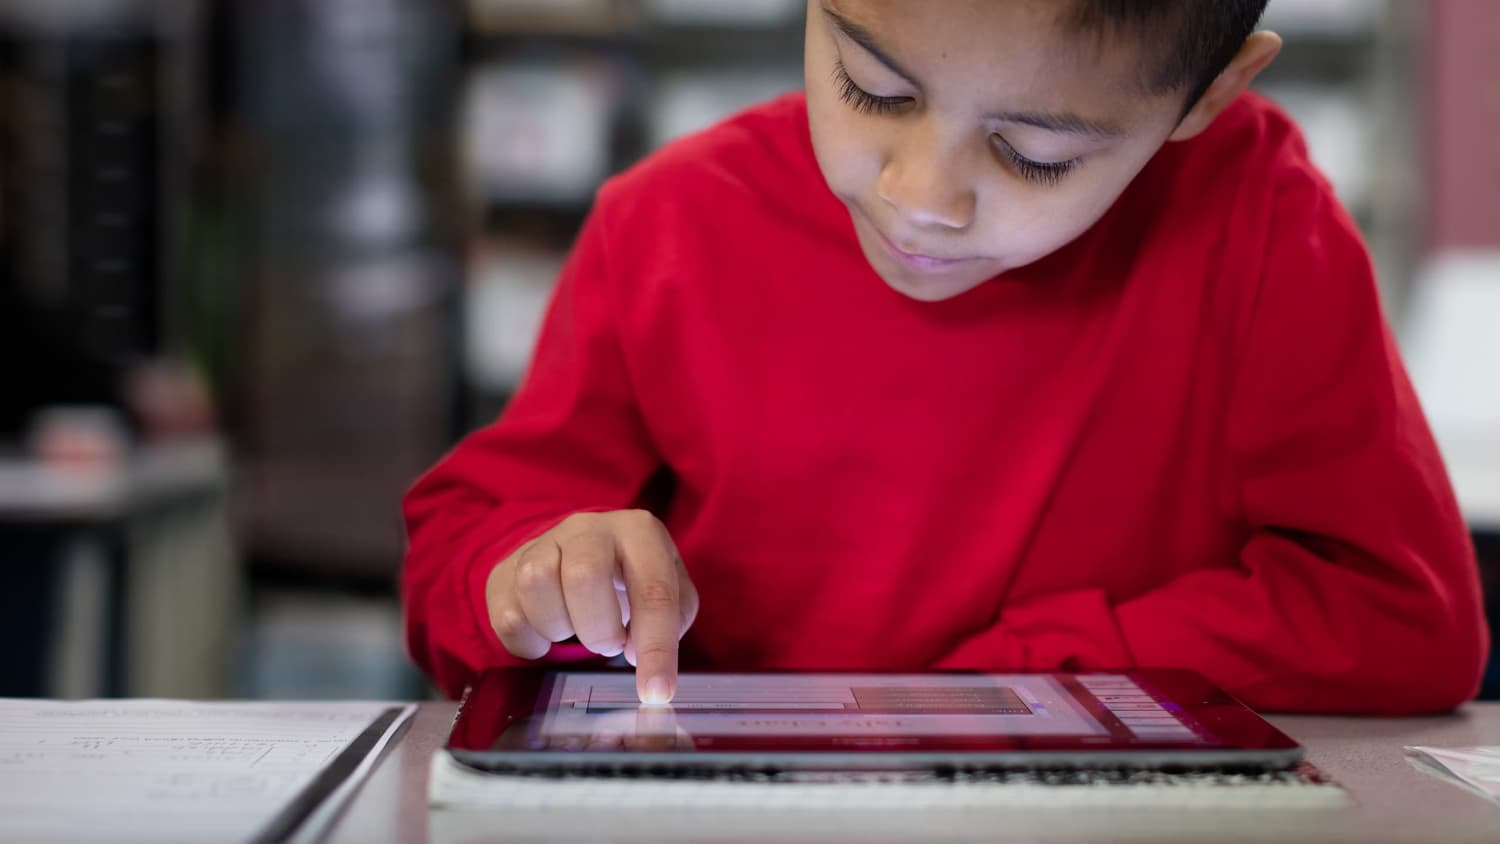 Enfant-ipad-Education-tablette